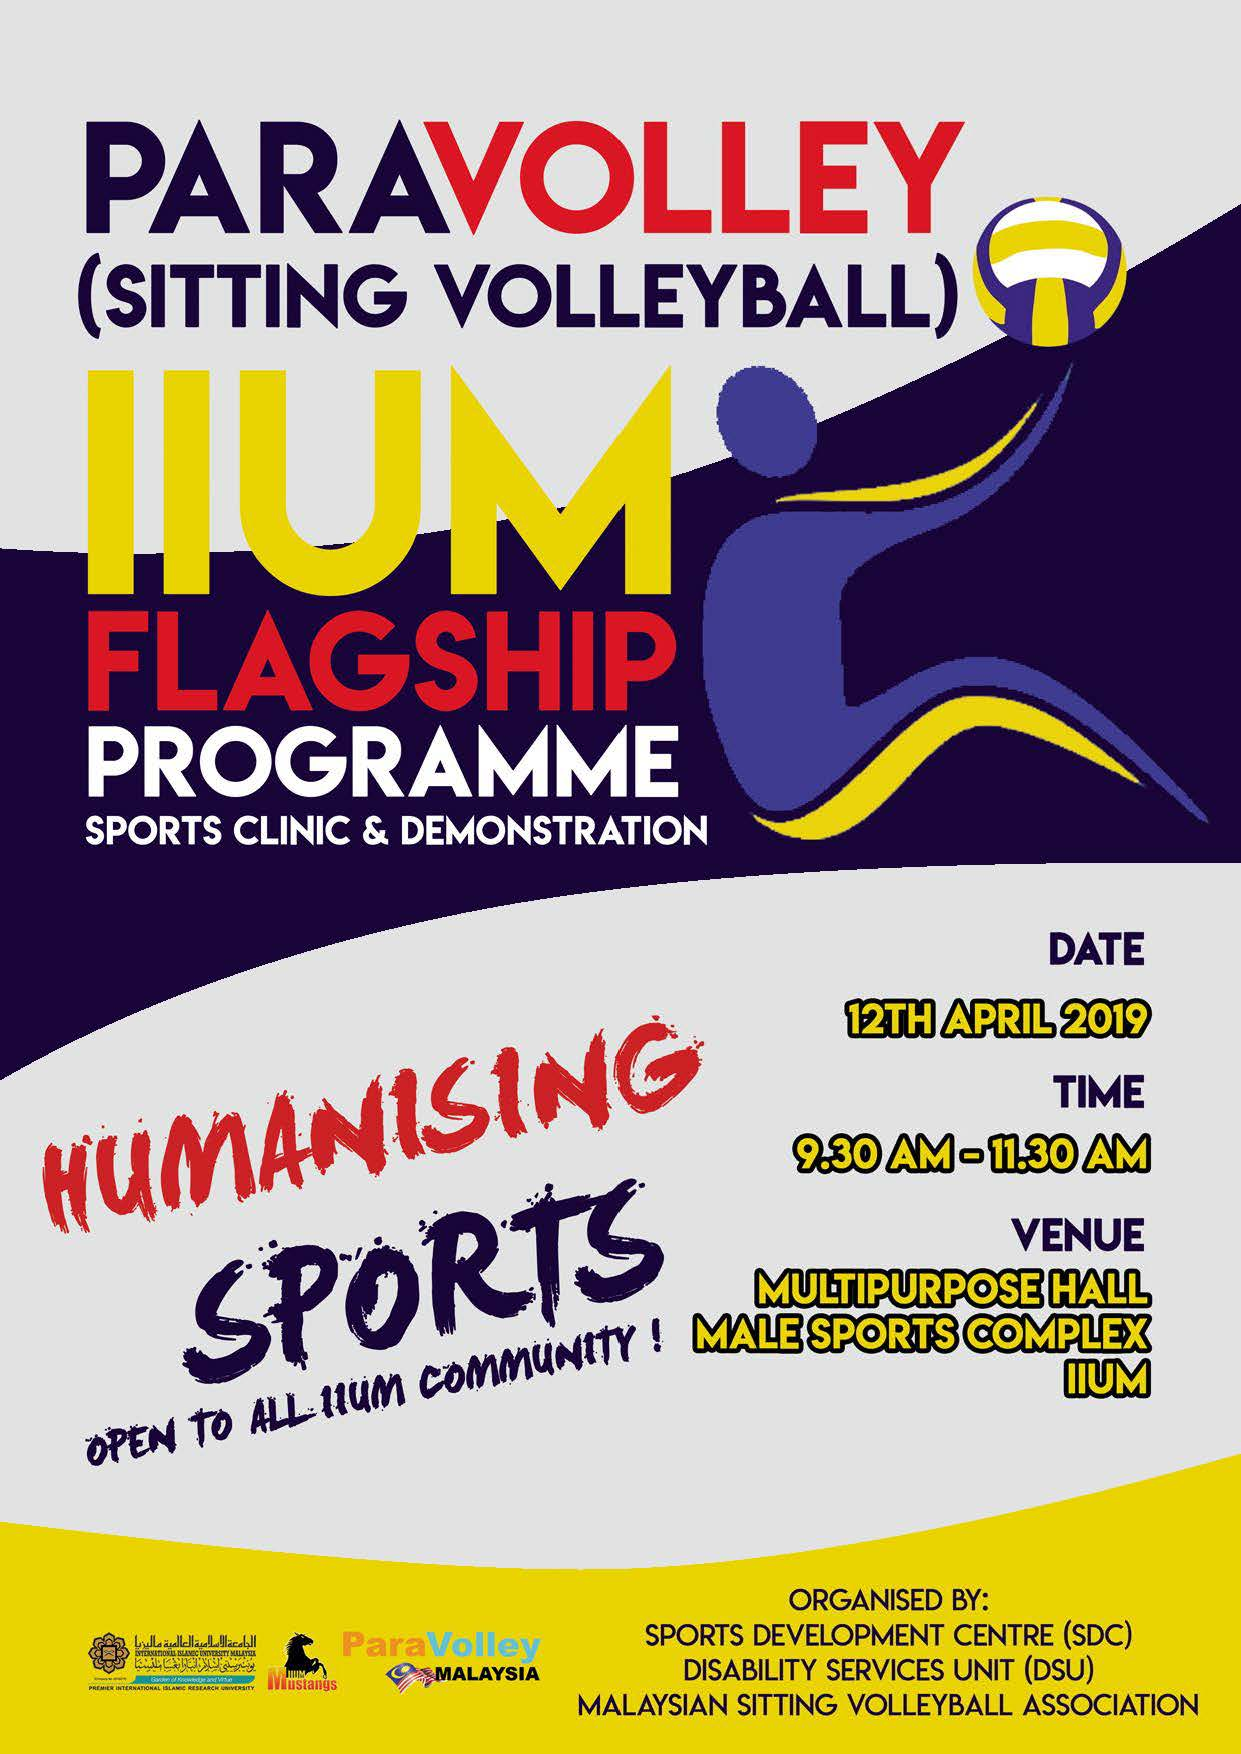 PARAVOLLEY SPORTS CLINIC AND DEMONSTRATION